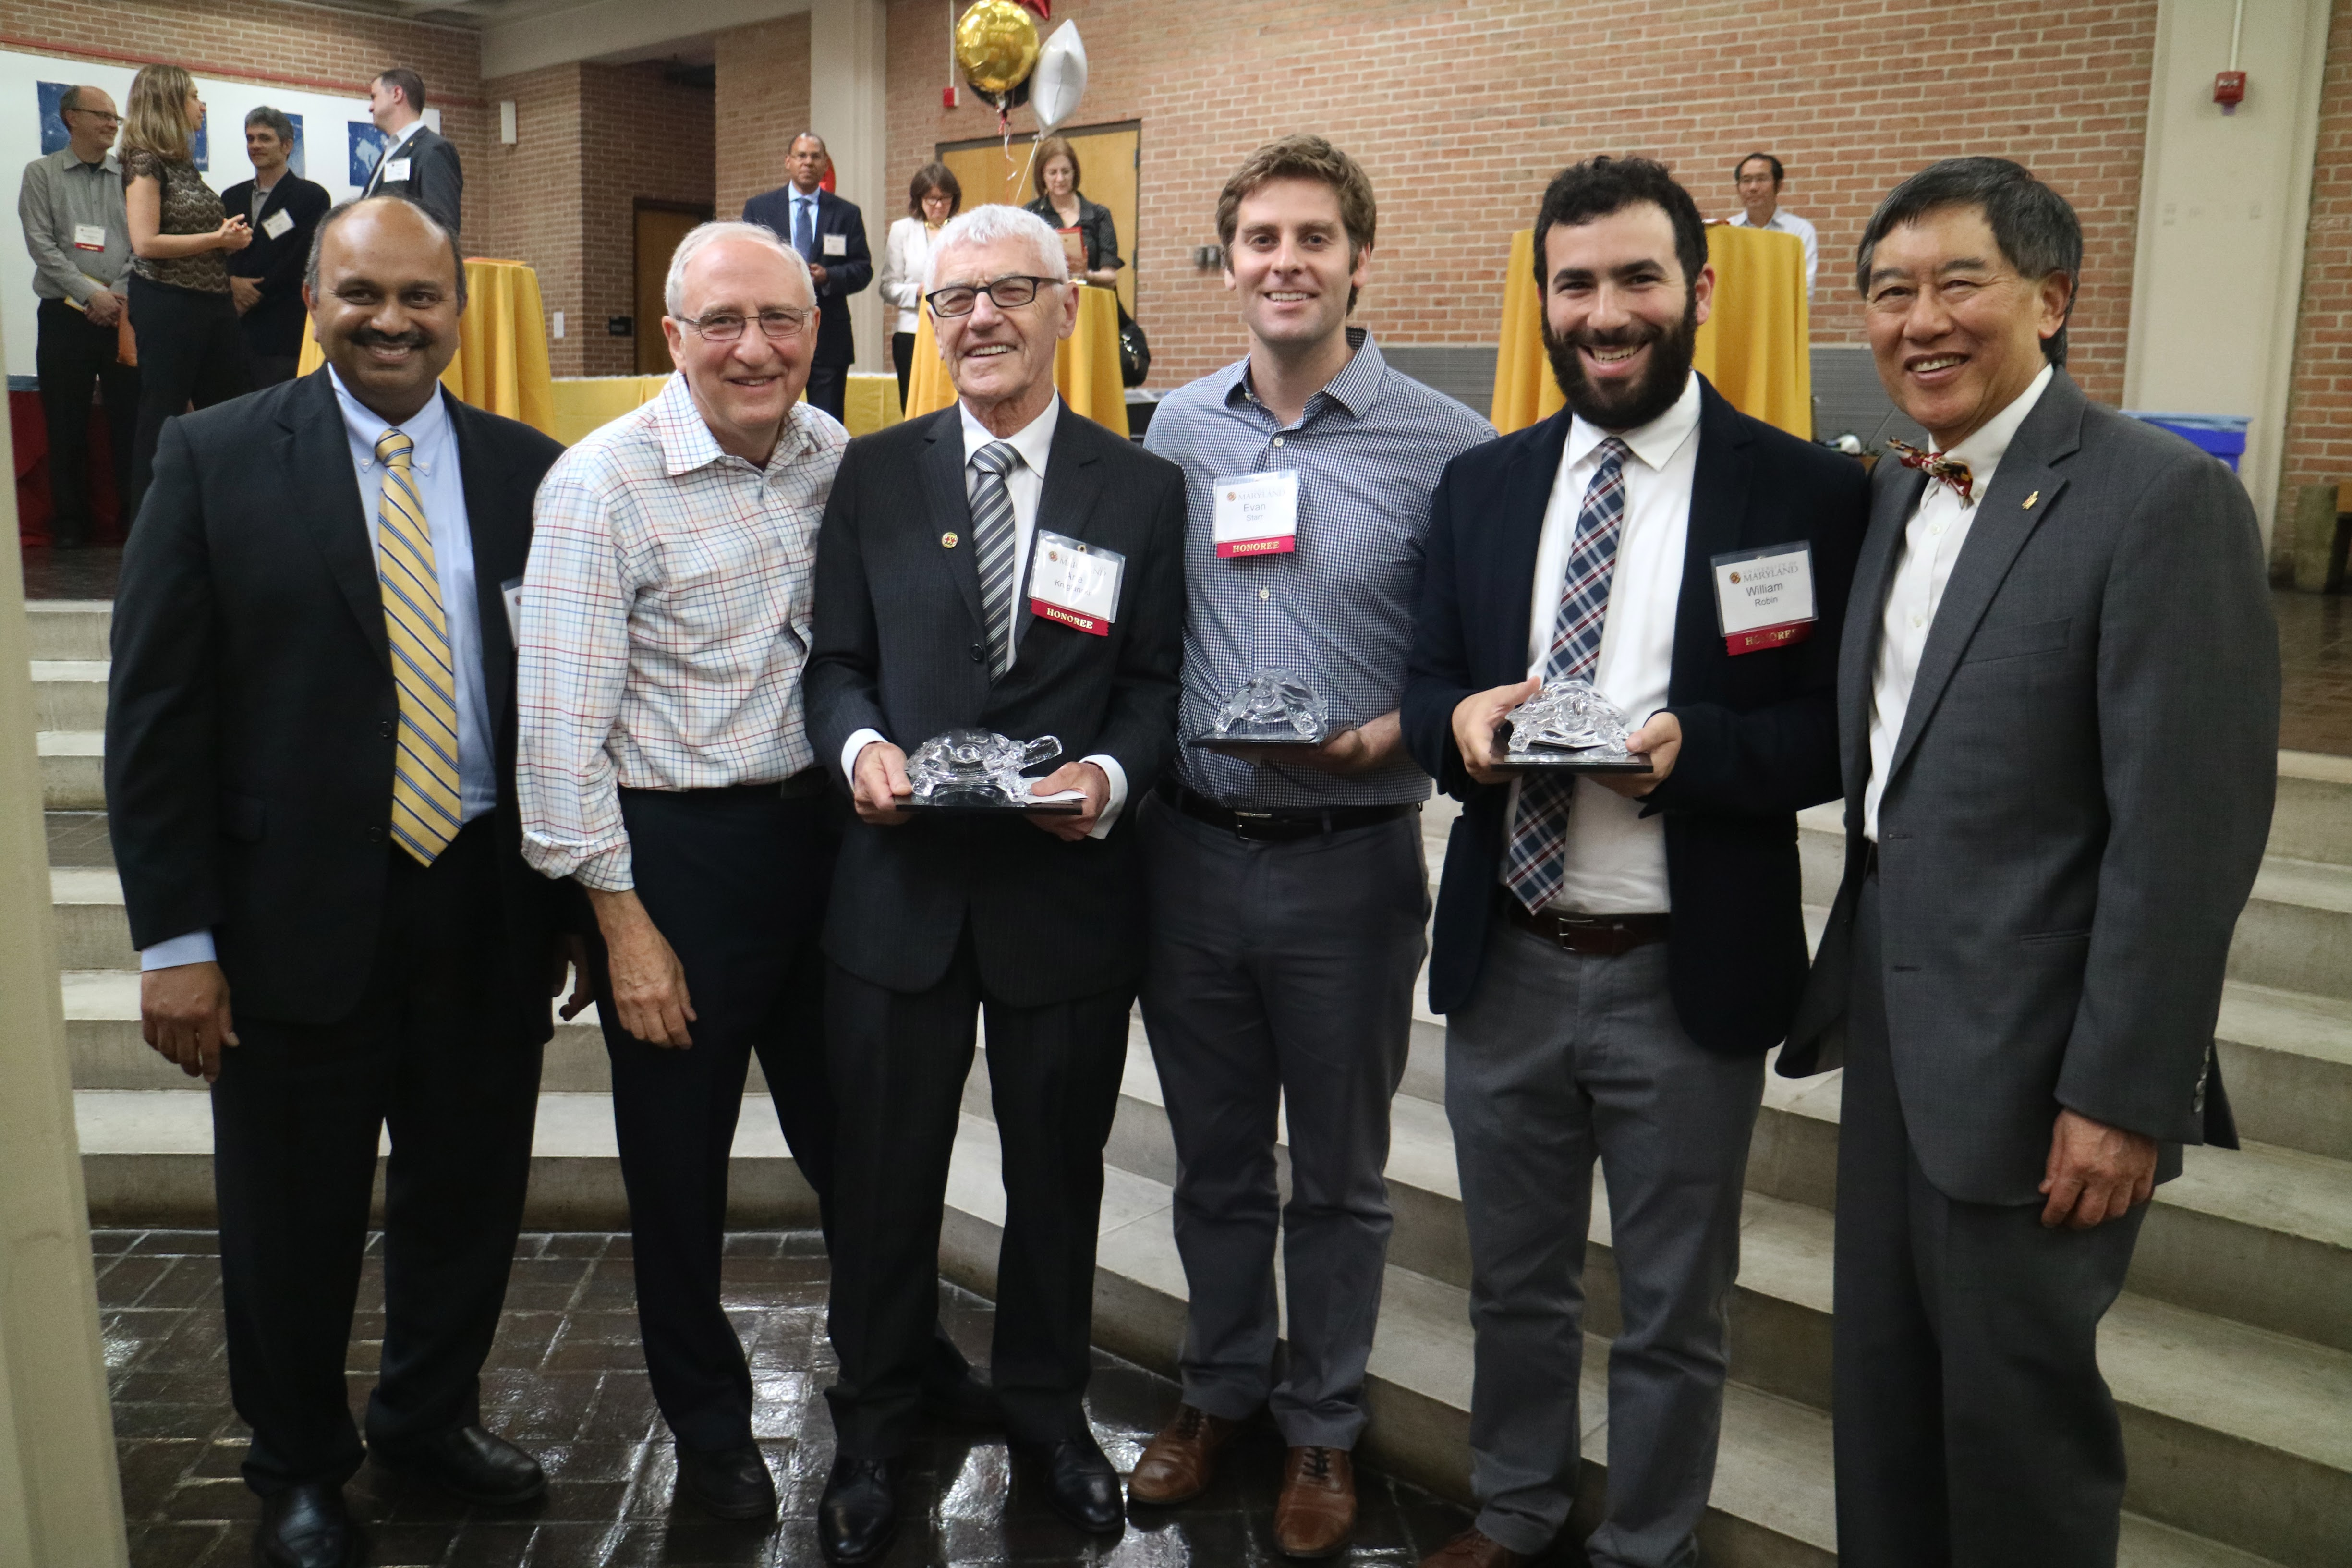 L-R: Interim Vice President for Research Amitabh Varshney, Ben Shneiderman, Arie Kruglanski, Evan Starr, William Robin, and President Wallace Loh.